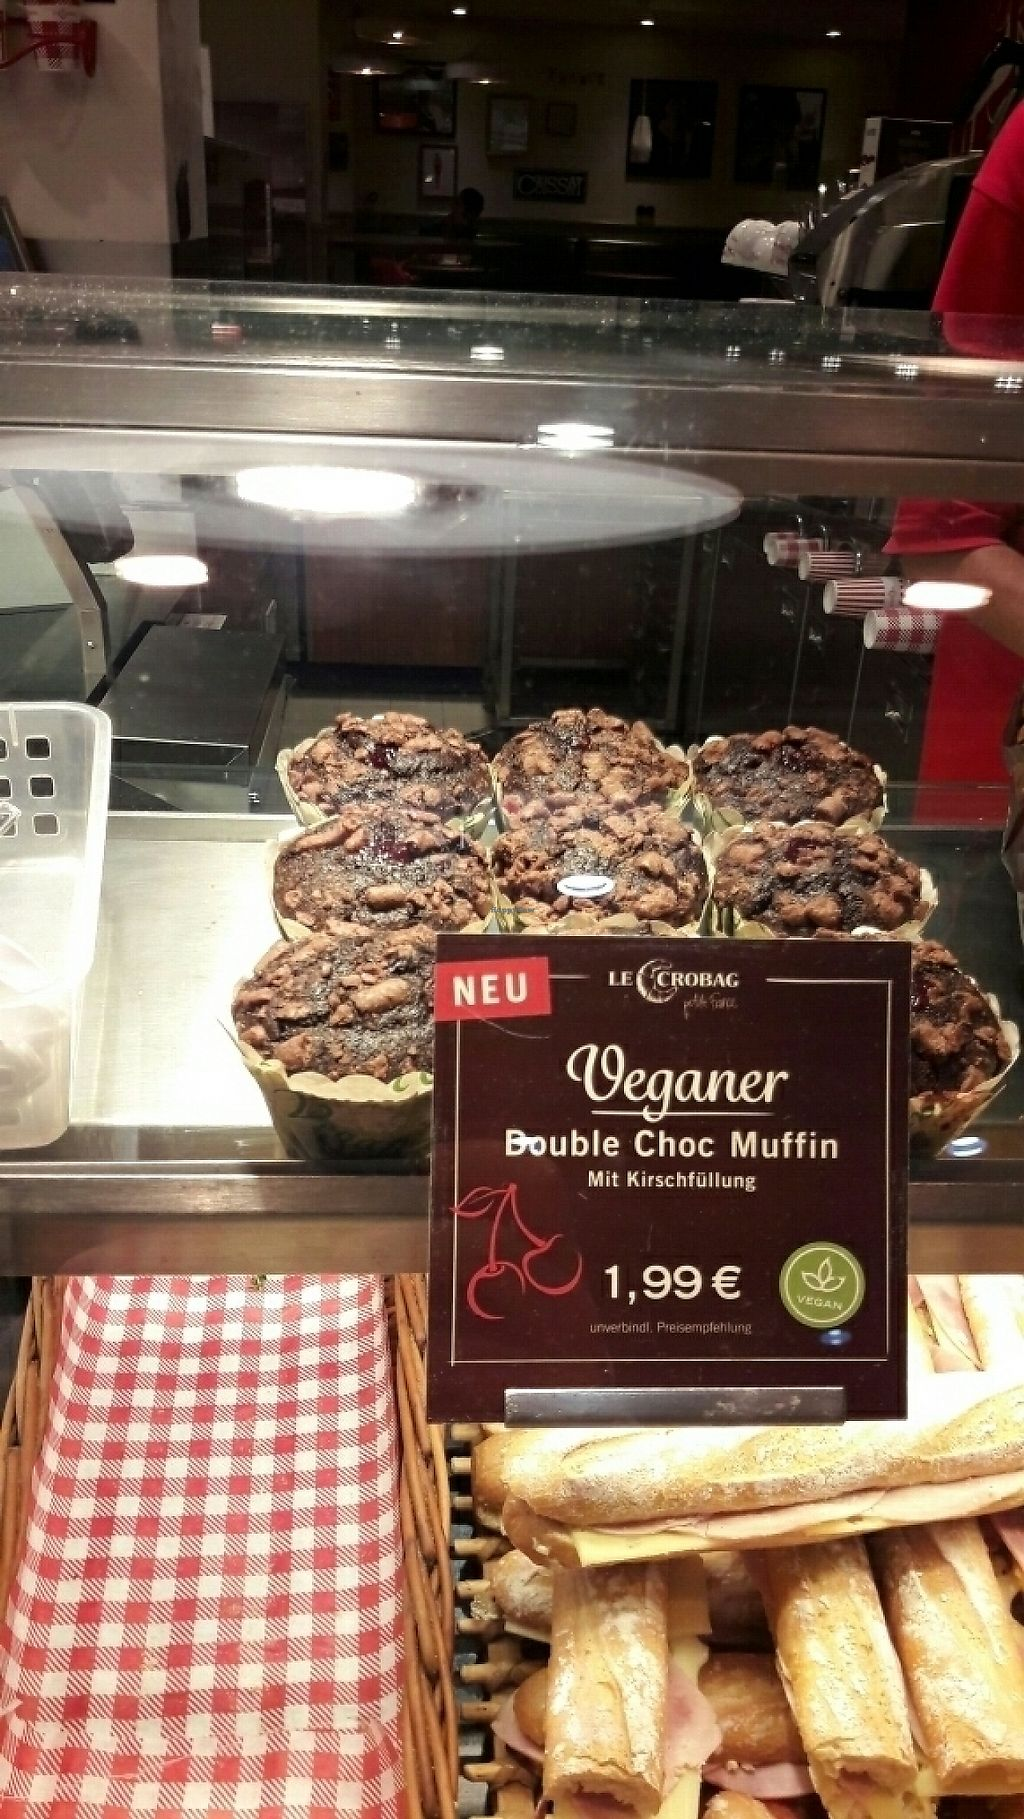 """Photo of Le Crobag  by <a href=""""/members/profile/piffelina"""">piffelina</a> <br/>Vegan muffin <br/> June 2, 2017  - <a href='/contact/abuse/image/52368/265123'>Report</a>"""